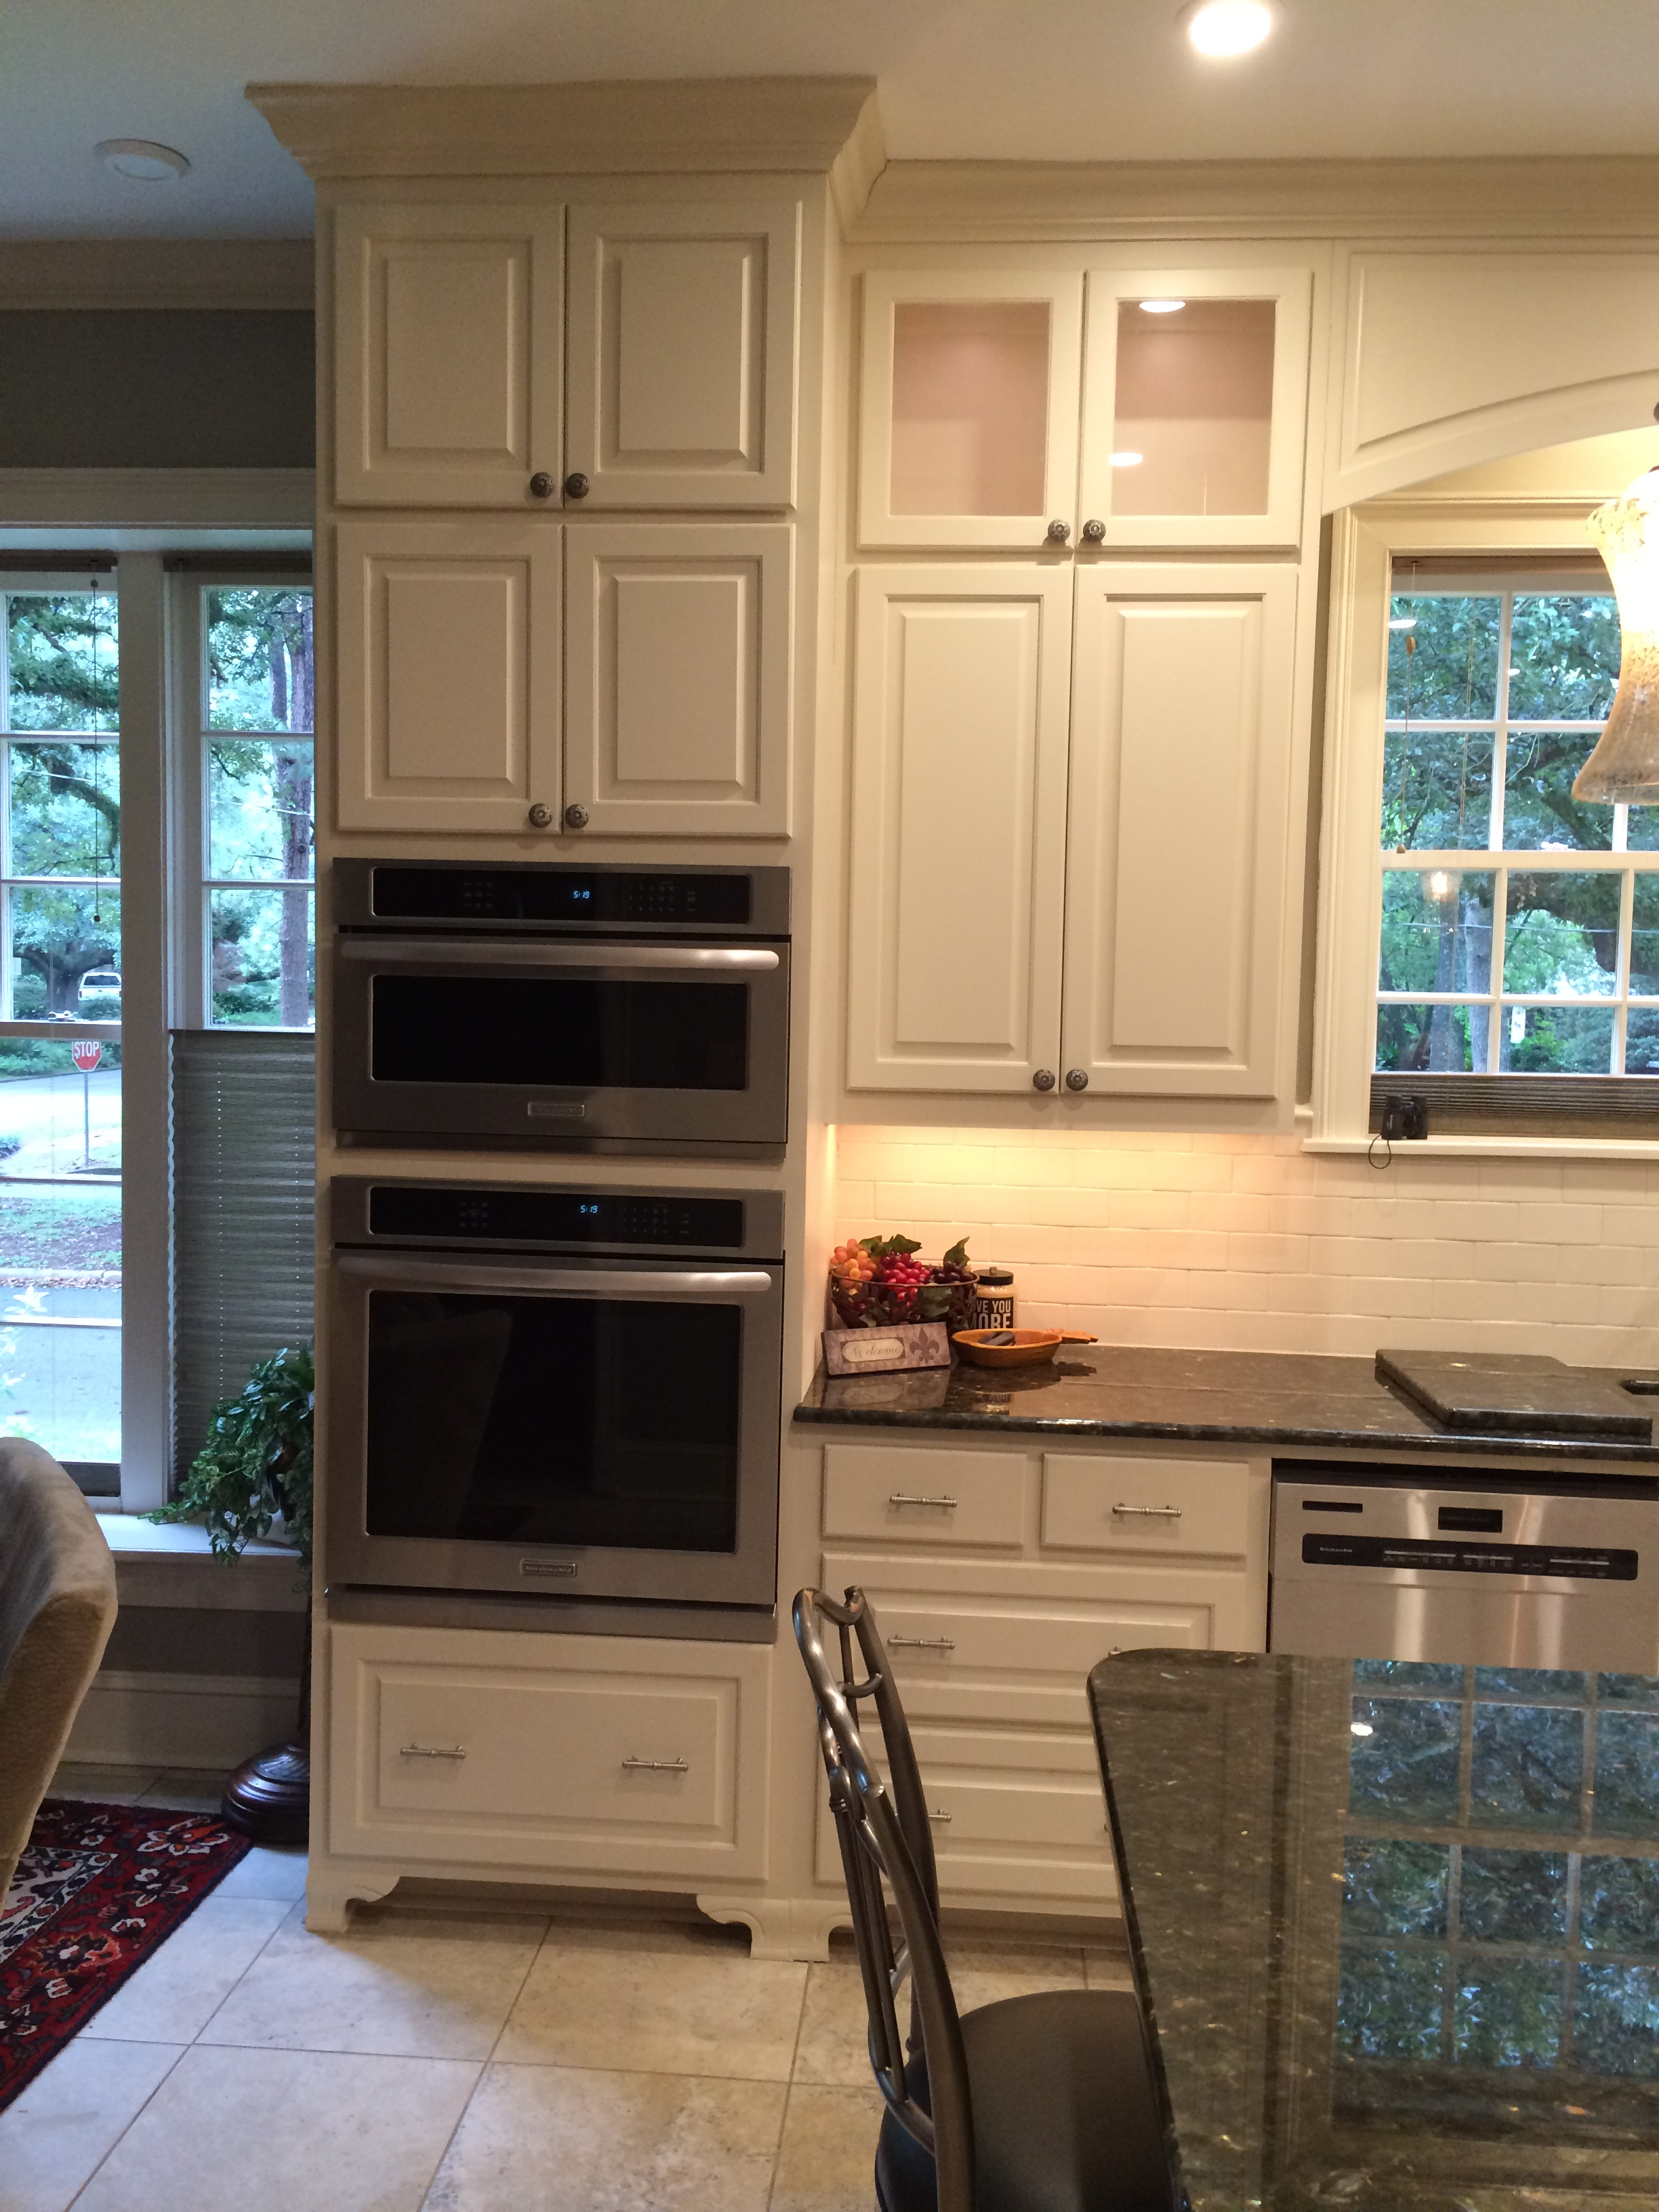 Garden District Kitchen Renovation Zitro Construction